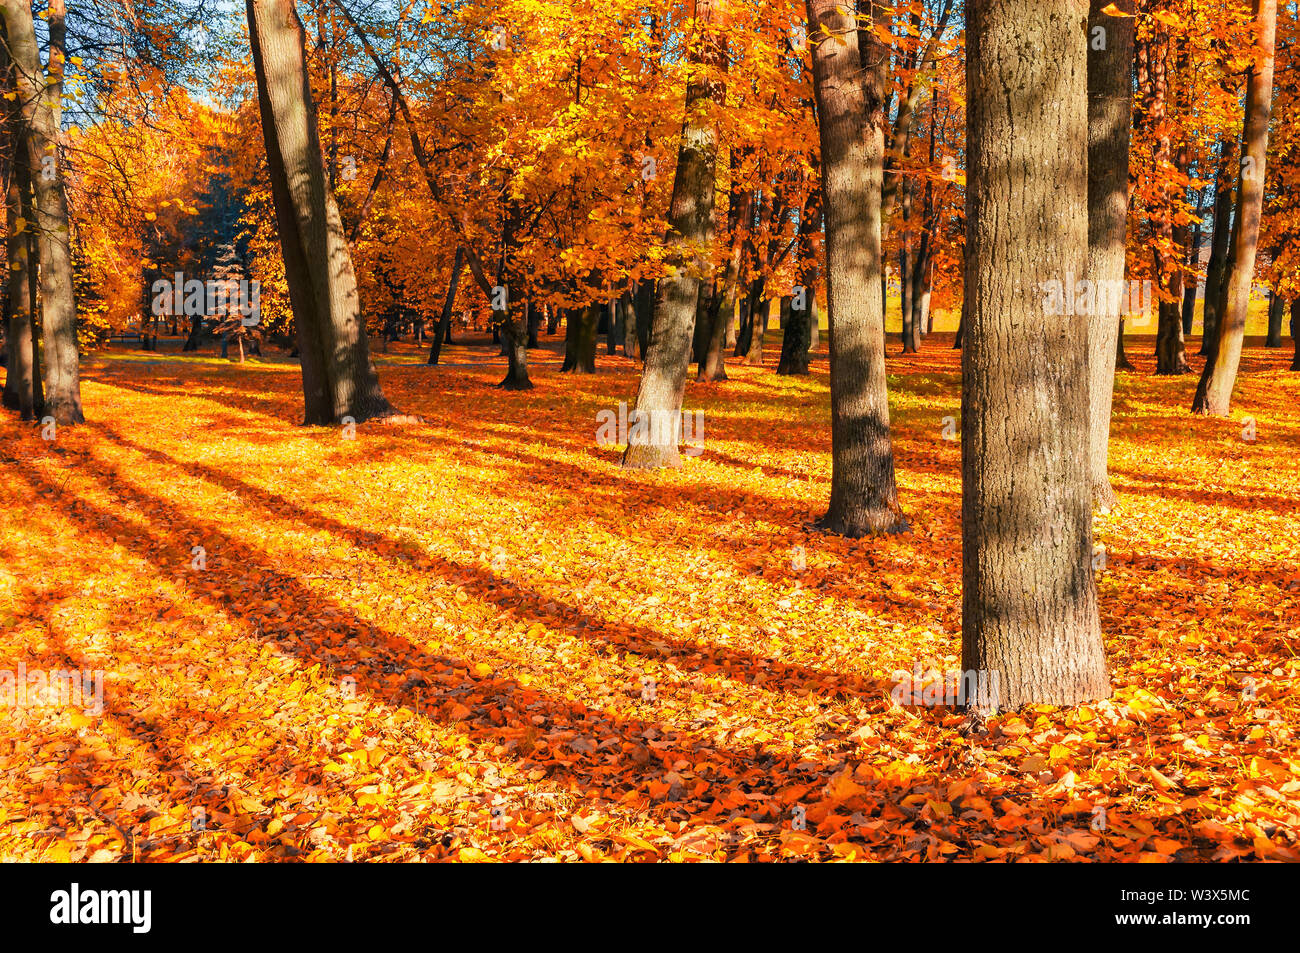 Fall landscape of sunny fall park in nice weather. Spreading fall trees with fallen fall leaves on the ground - Stock Image